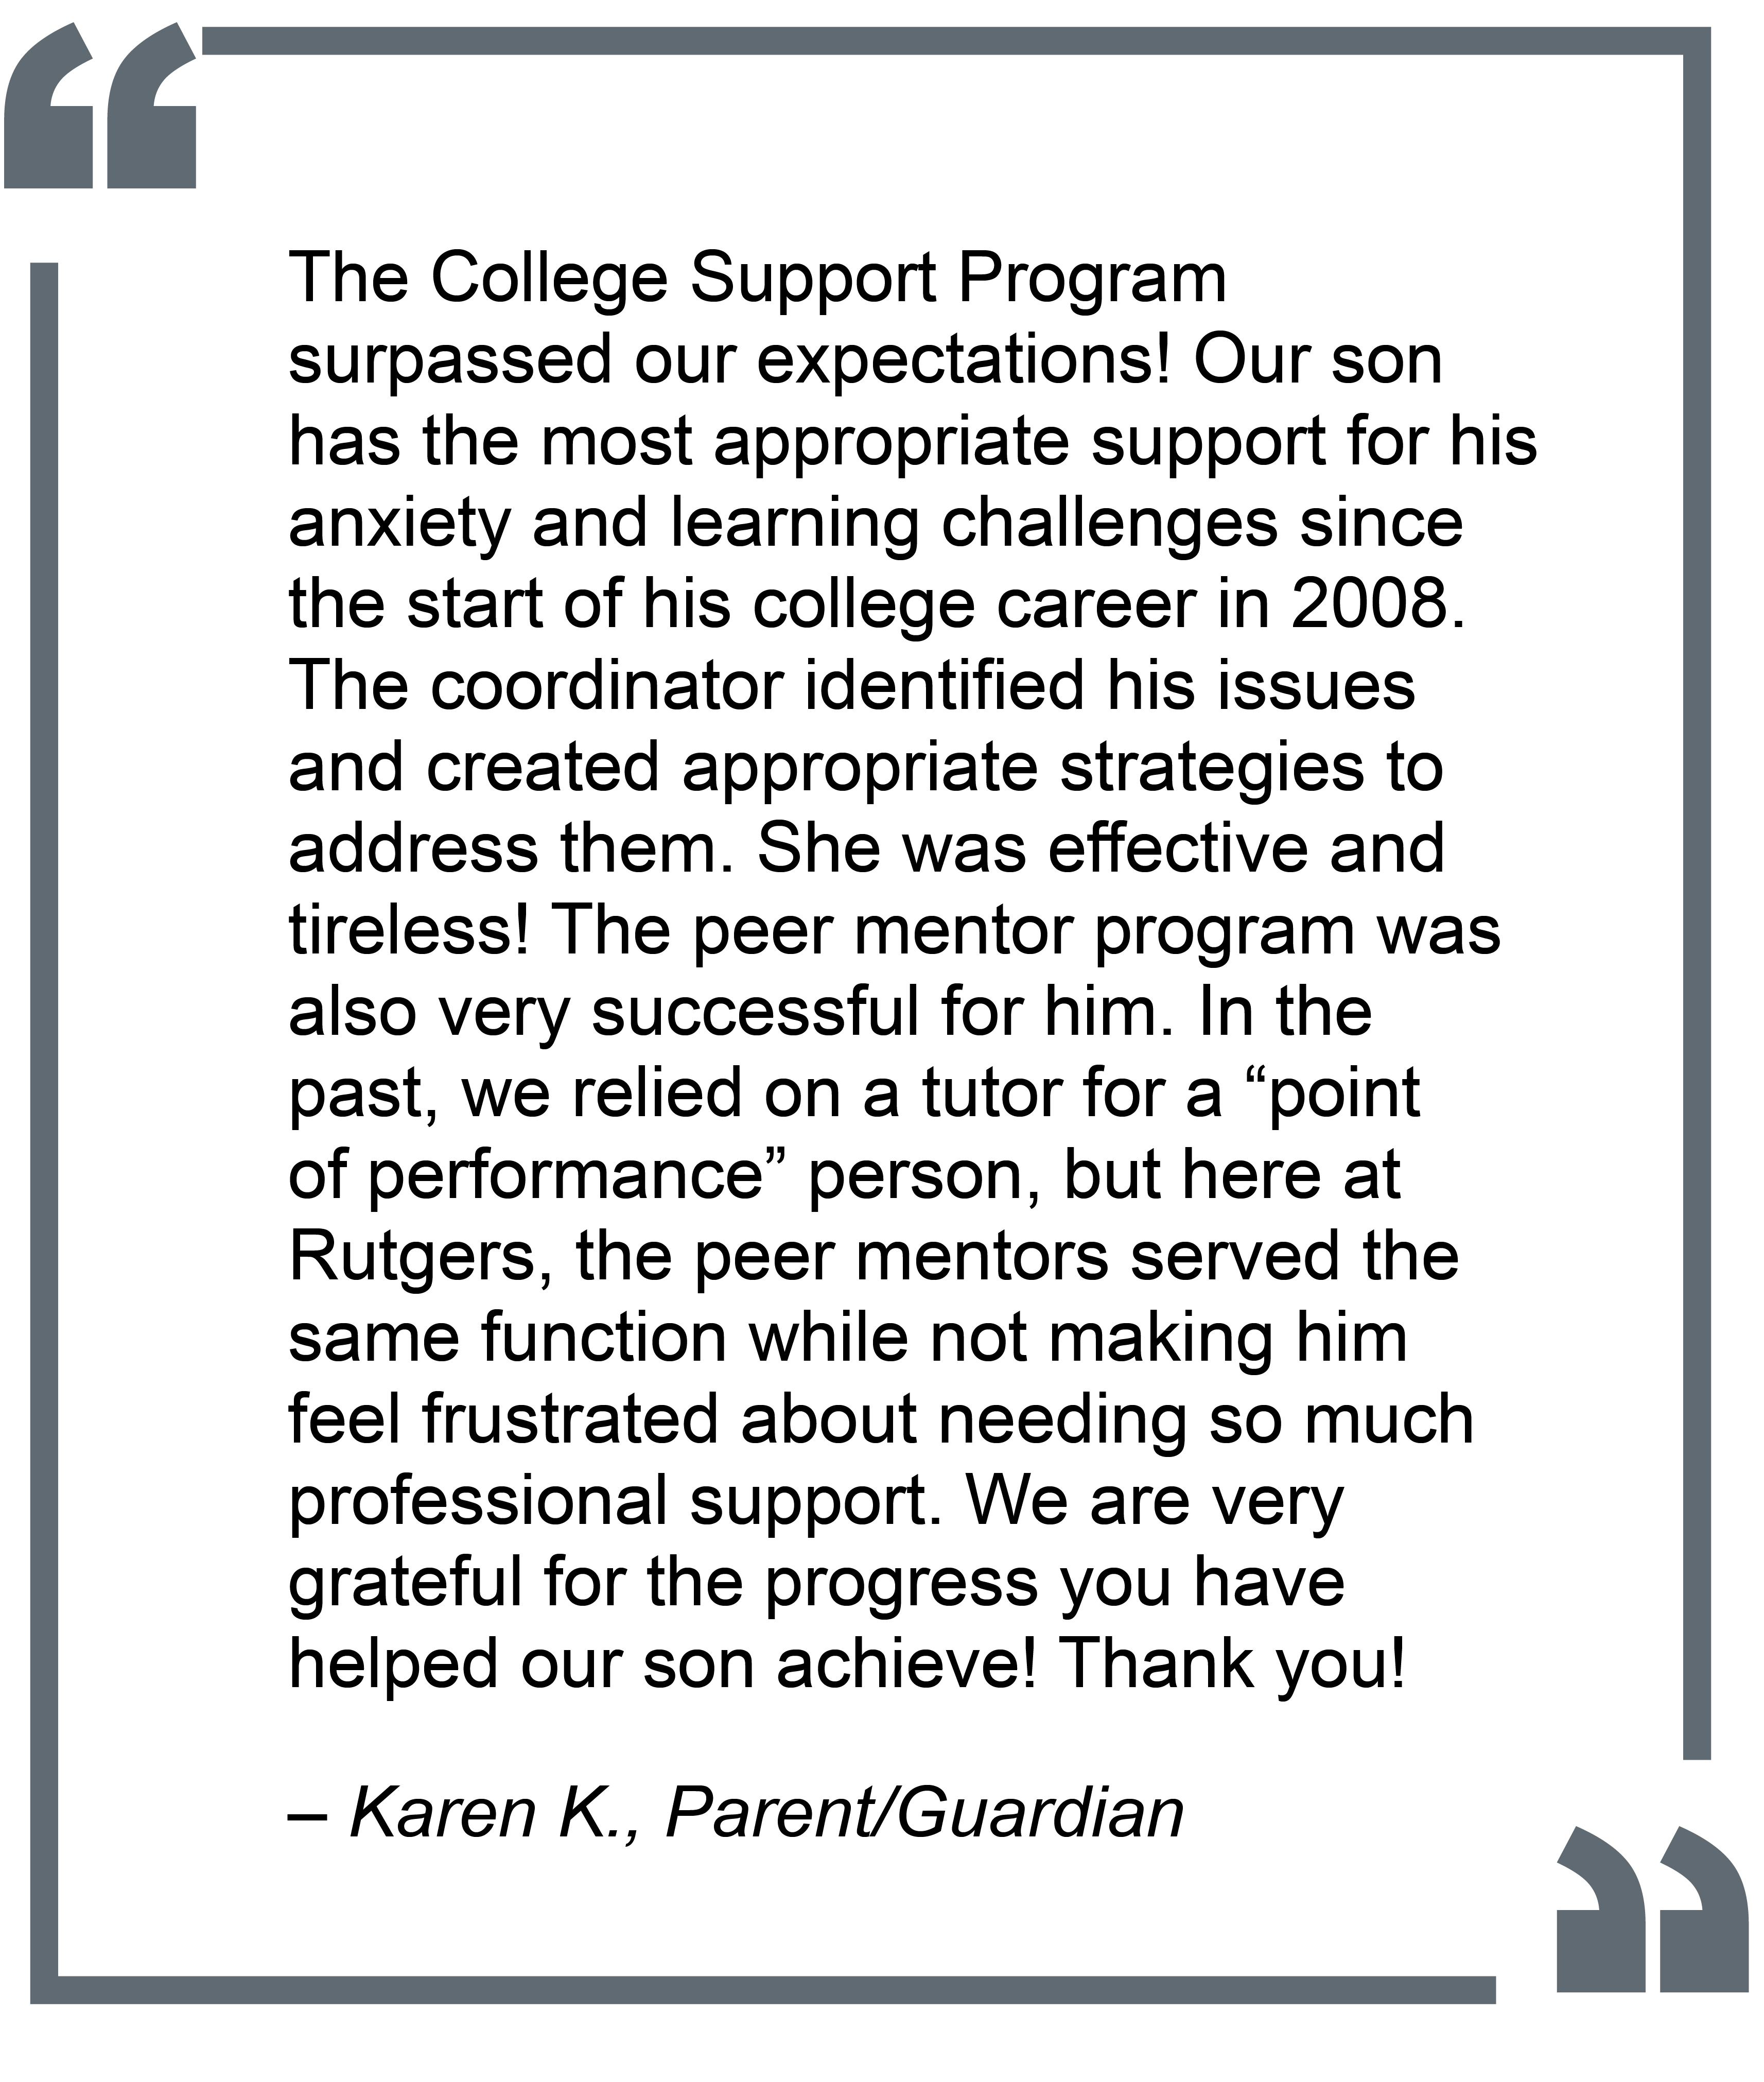 """The College Support Program surpassed our expectations! Our son has the most appropriate support for his anxiety and learning challenges since the starte of his college career in 2008. The coordinator identified his issues and created appropriate strategies to address them. She was effective and tireless! The peer mentor program was also very successful for him. In the past, we relied on a tutor for a ""point of performace"" person, but here at Rutgers, the peer mentors served the same function while not making him feel frustrated about needing so much professional support. We are very grateful for the progress you have helped our son achieve! Thank you!"" - Karen K., Parent/Guardian"